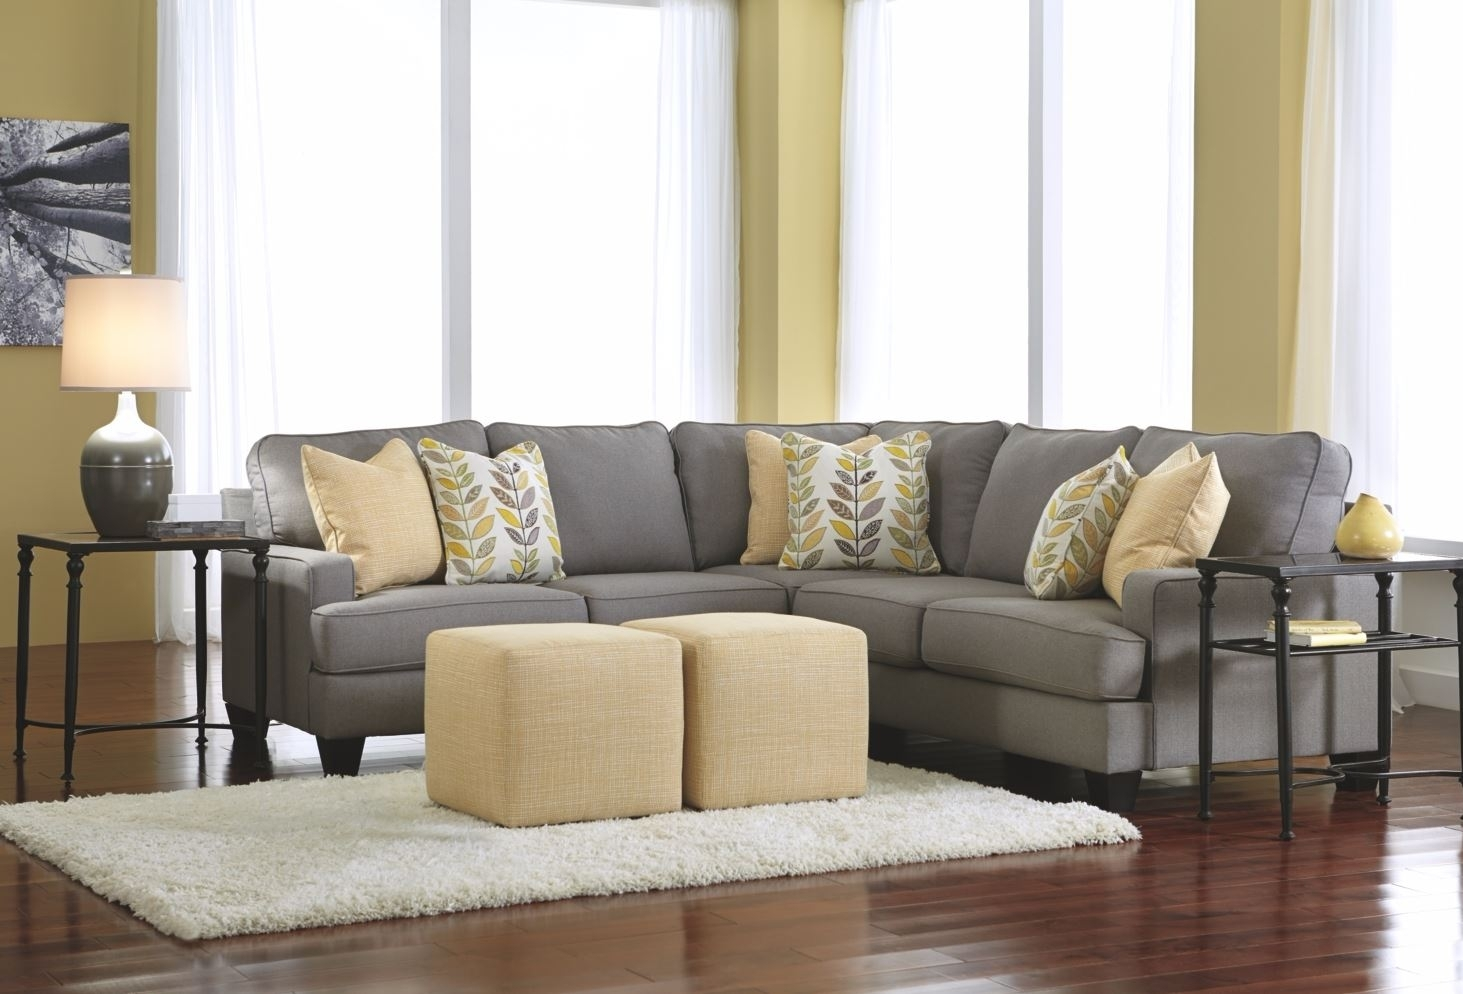 5 Tips For Getting The Sectional Of Your Dreams | Ashley Homestore intended for Karen 3 Piece Sectionals